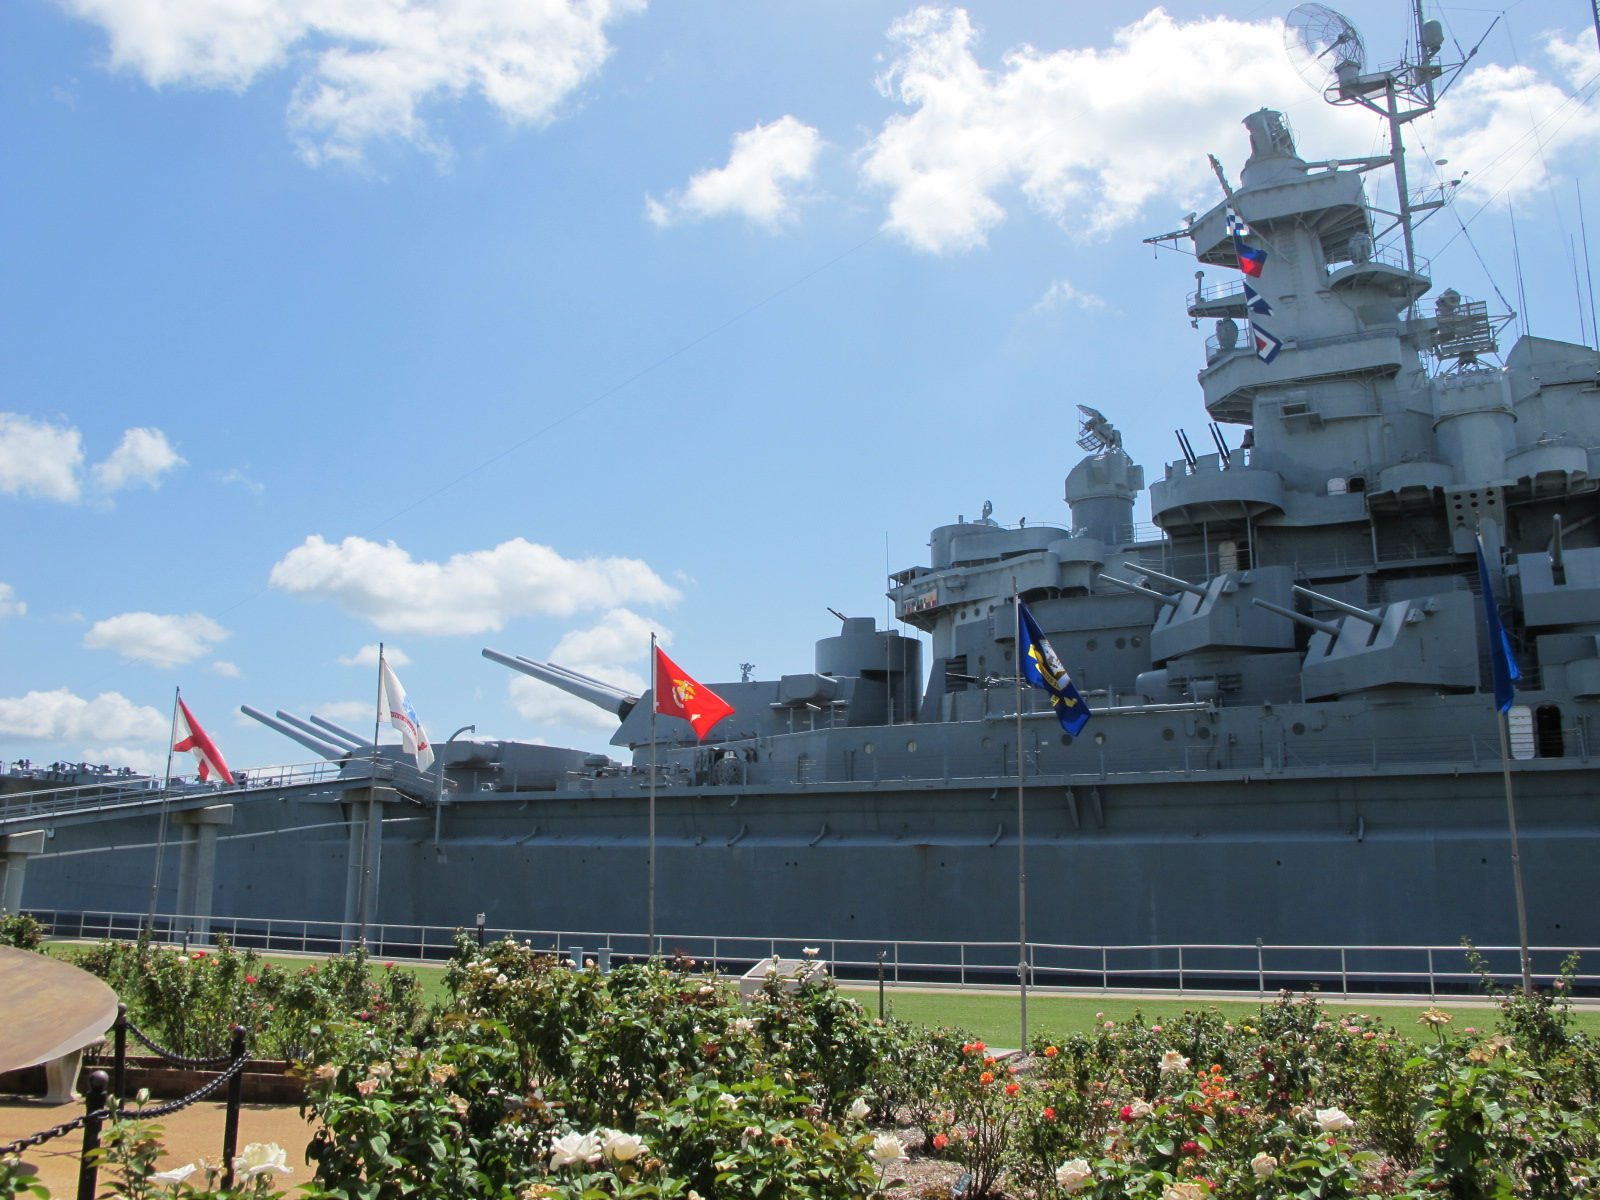 the ss alabama fought in the pacific during wwii and drum cruised pearl harbour and japan